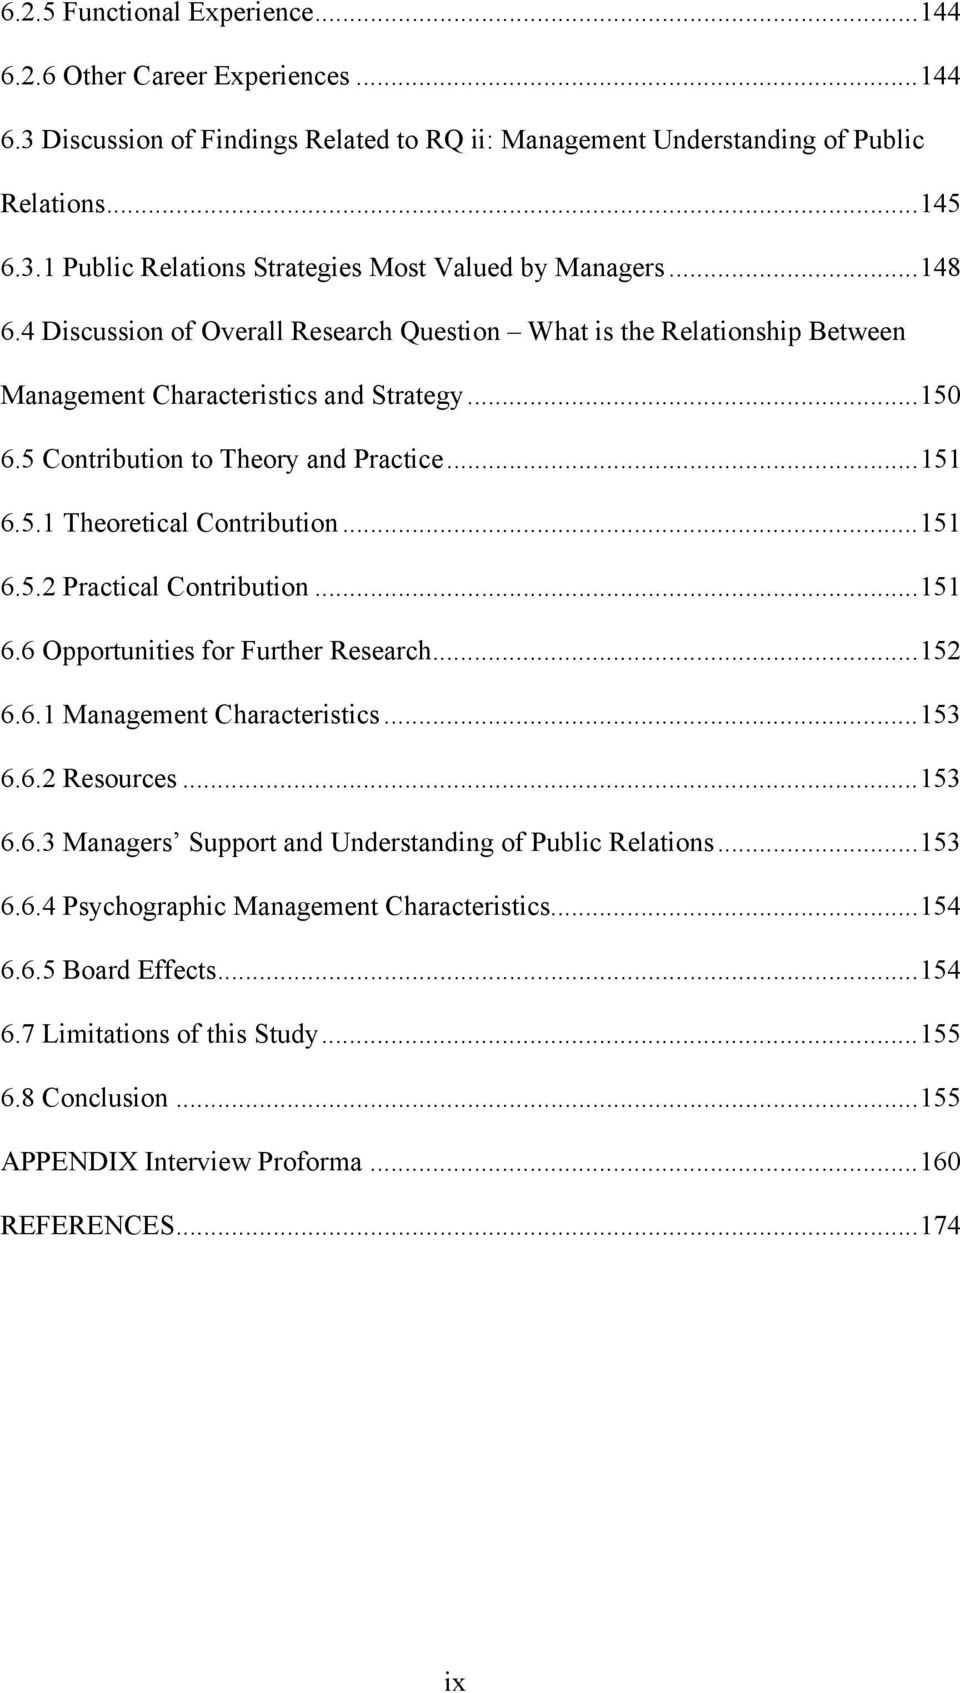 .. 151 6.5.2 Practical Contribution... 151 6.6 Opportunities for Further Research... 152 6.6.1 Management Characteristics... 153 6.6.2 Resources... 153 6.6.3 Managers Support and Understanding of Public Relations.